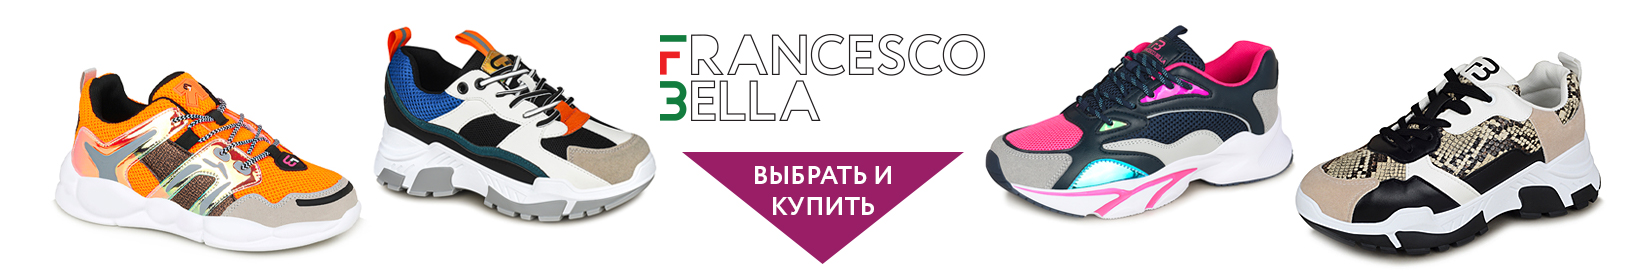 Francesco Bella